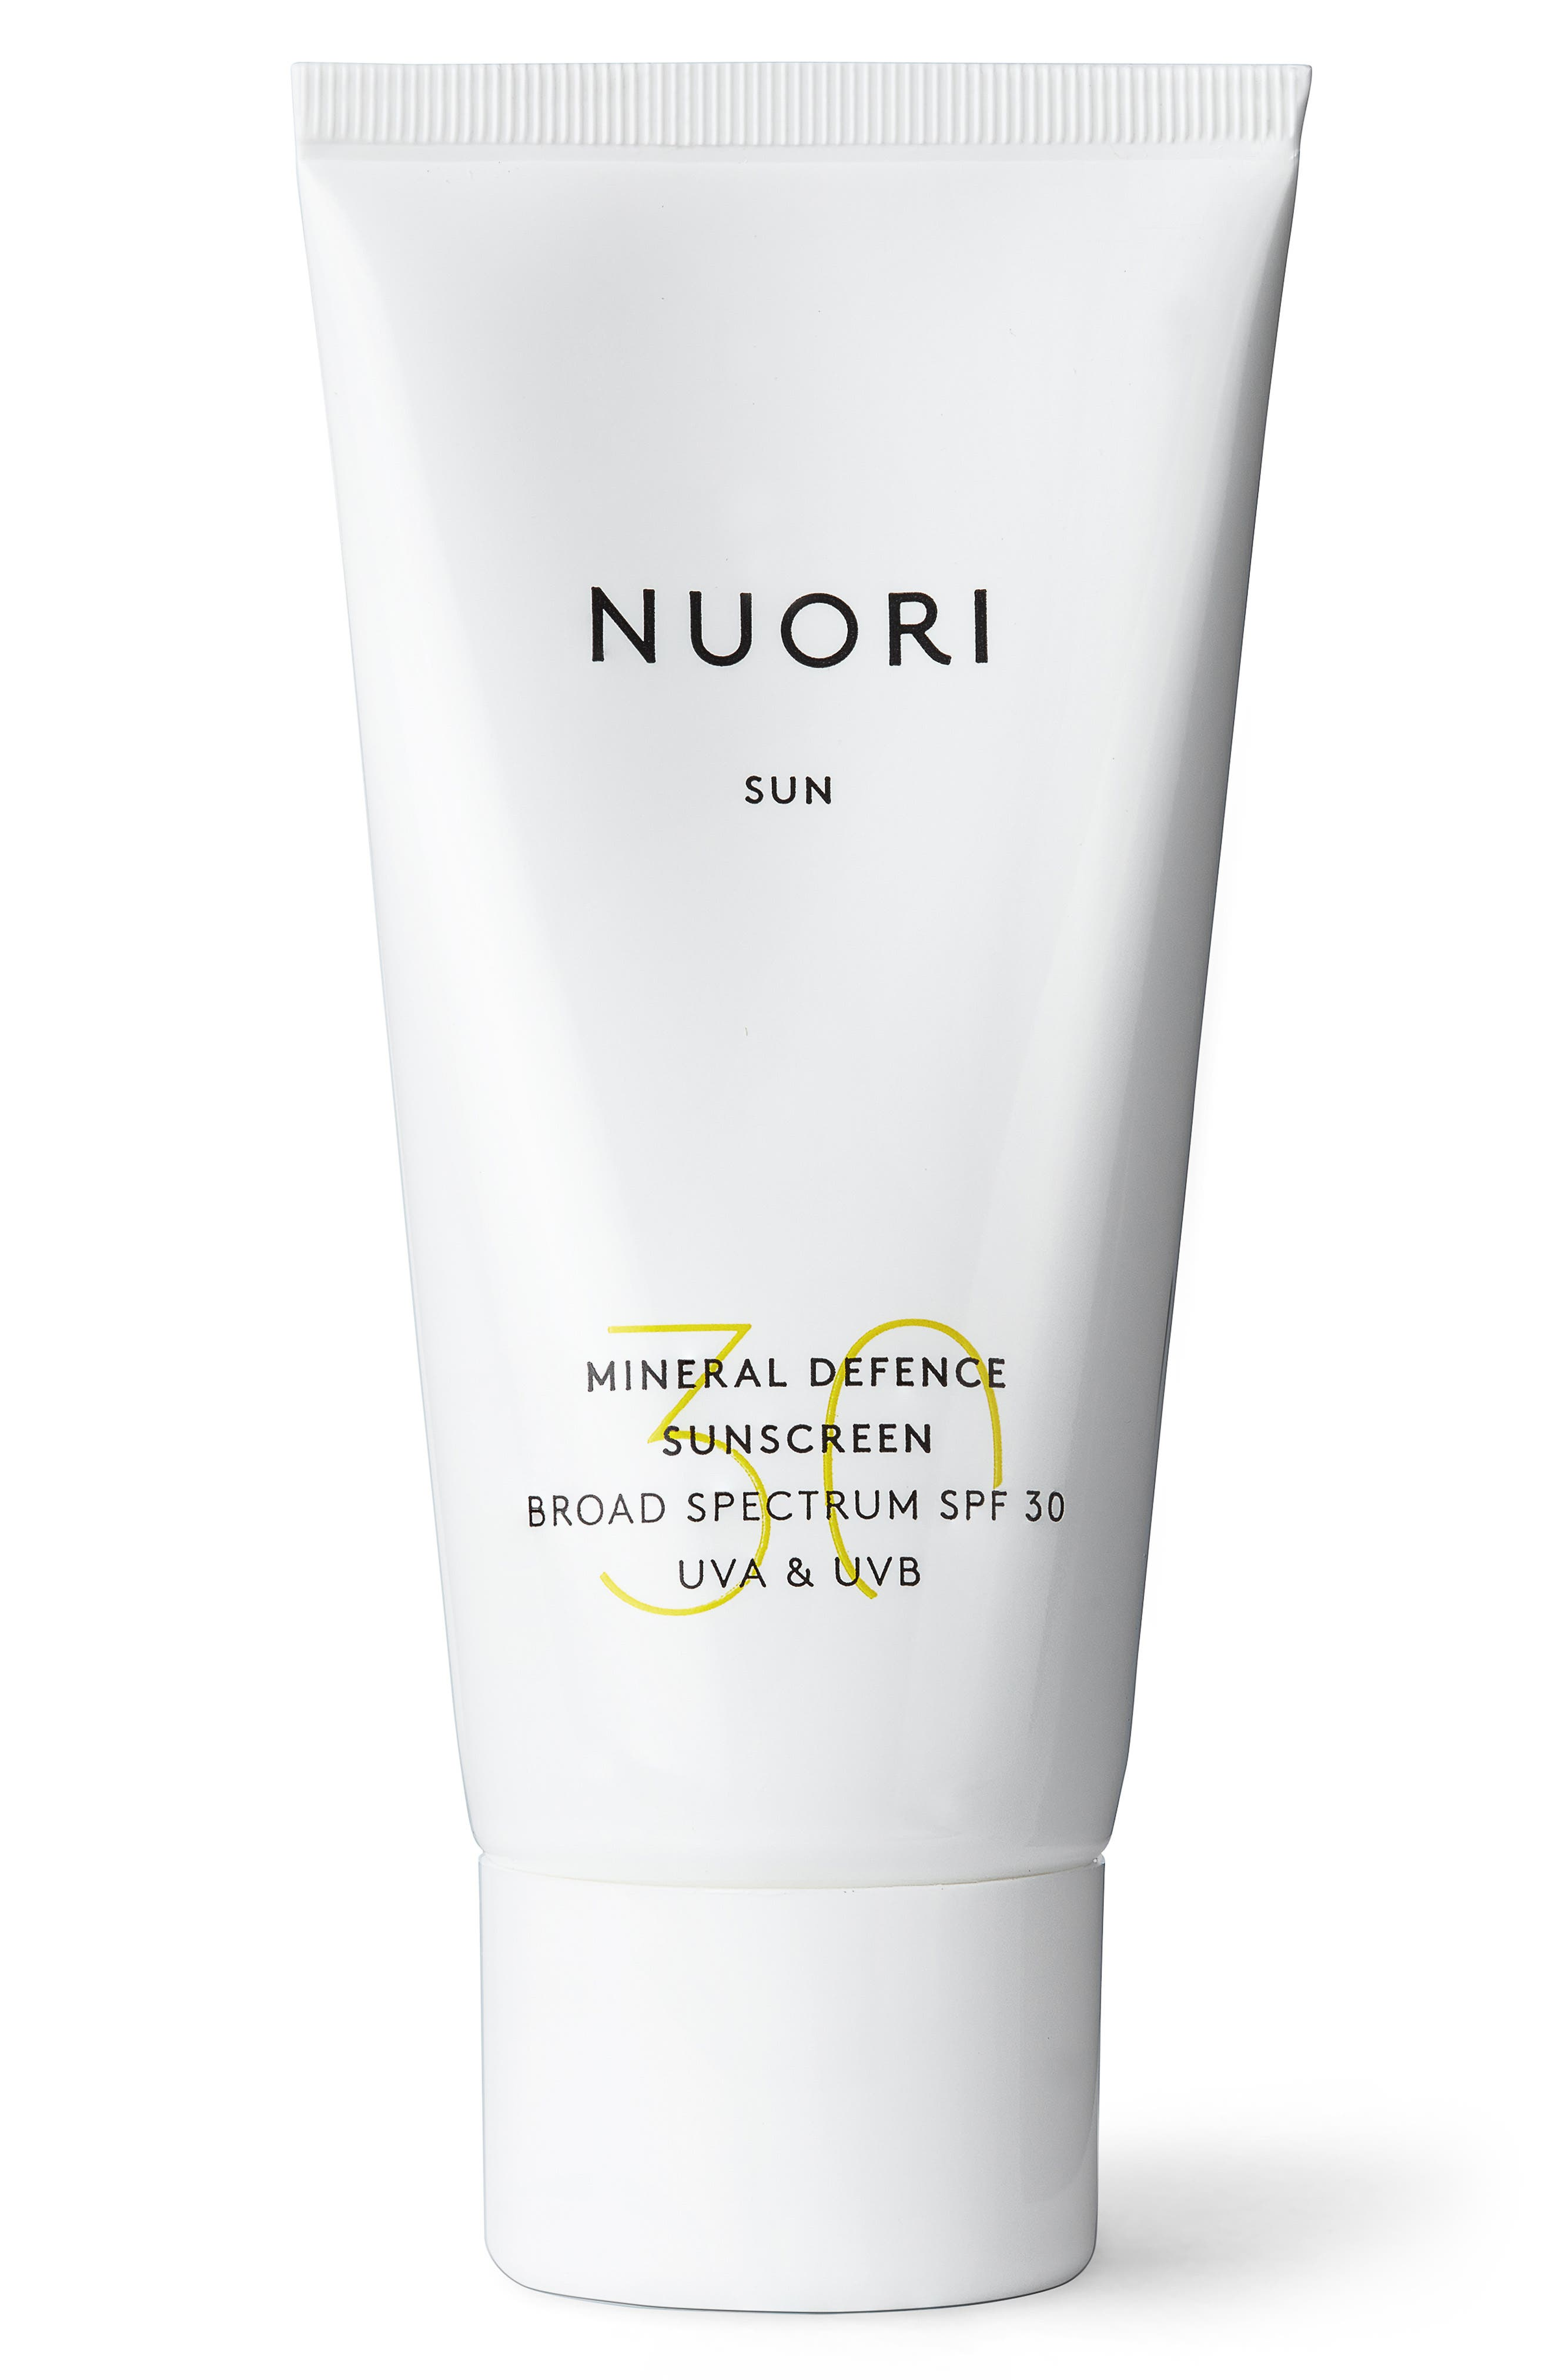 What it is: An all-natural sunscreen that delivers broad-spectrum protection against both UVA and UVB rays. What it does: A new generation of transparent, non-nano zinc oxide ensures high protection with a soft, sensory feel and sheer, non-sticky finish, making this sunscreen ideal for everyday usage. French maritime pine extract helps inhibit oxidative stress induced by pollutants, sunburn and photoaging and helps reduce hyper-pigmentation and